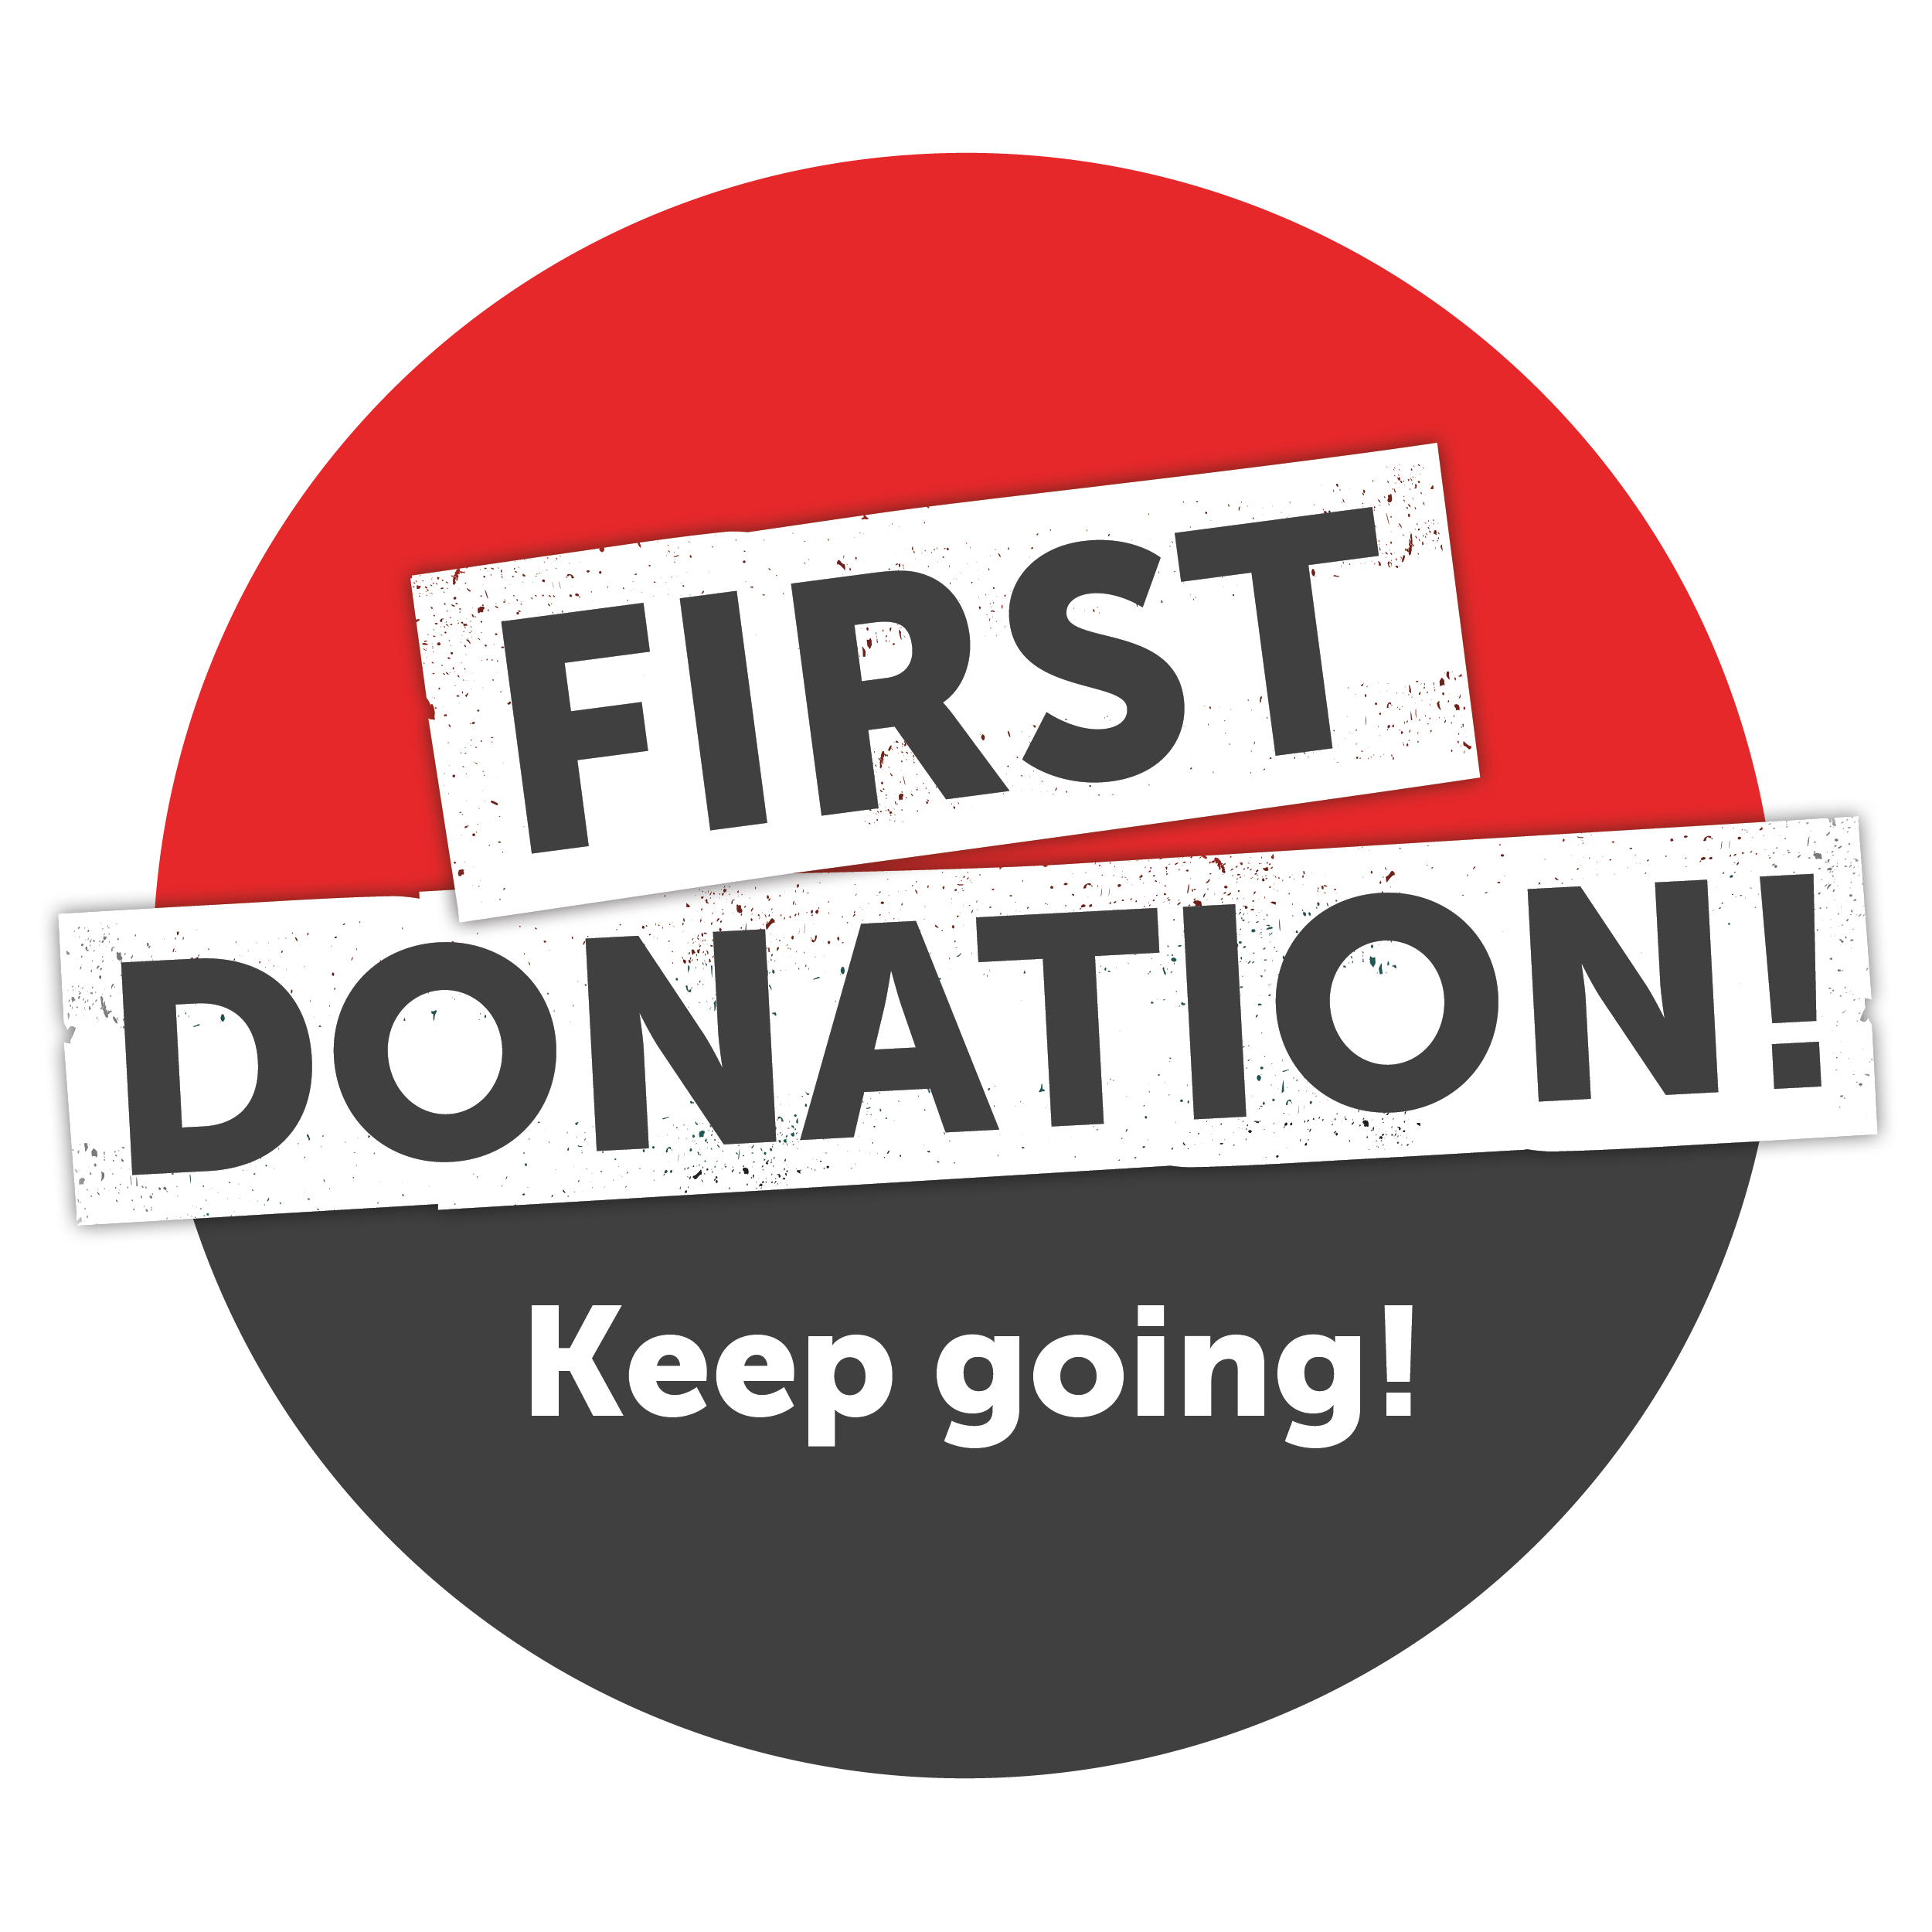 First donation - keep going!